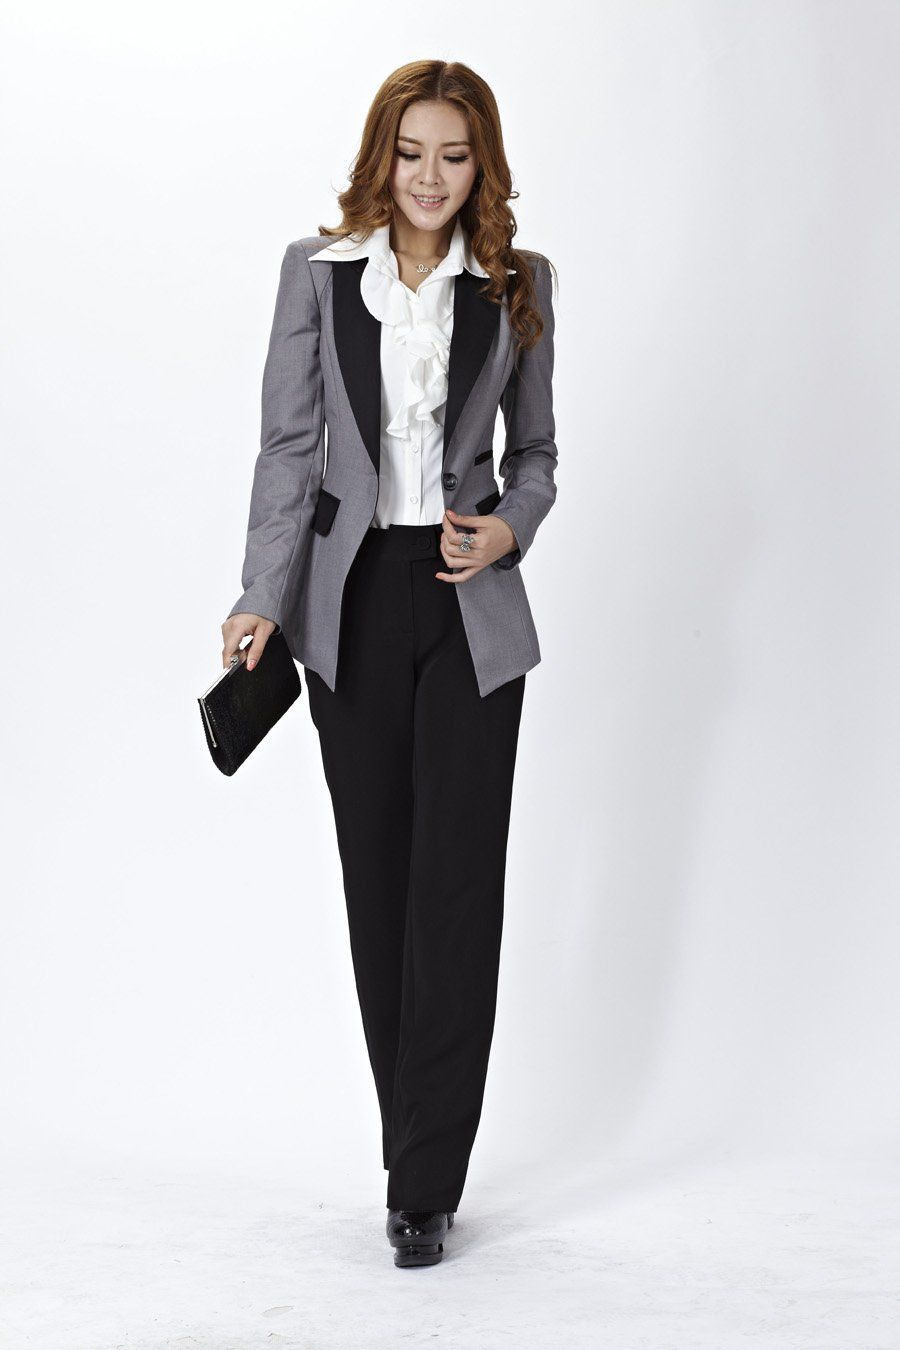 2014 New Fashion Women Suits Blazer & Pants for OL Office Ladies ...